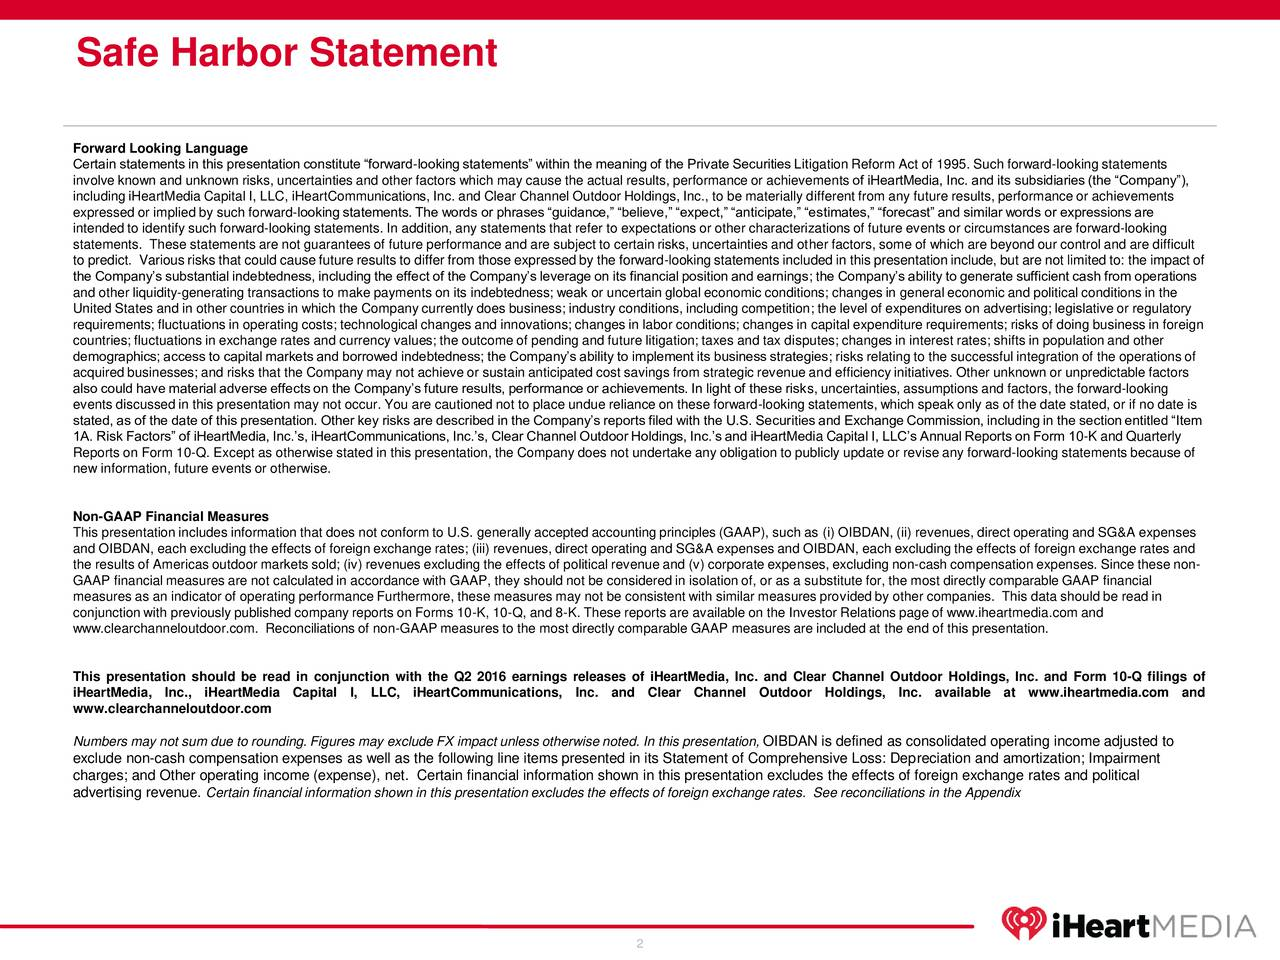 Forward Looking Language Certain statements in this presentation constitute forward-looking statements within the meaning of the Private Securities Litigation Reform Act of 1995. Such forward-looking statements involve known and unknown risks, uncertainties and other factors which may cause the actual results, performance or achievements of iHeartMedia, Inc. and its subsidiaries (the Company), including iHeartMedia Capital I, LLC, iHeartCommunications, Inc. and Clear Channel Outdoor Holdings, Inc., to be materially different from any future results, performance or achievements expressed or implied by such forward-looking statements. The words or phrases guidance, believe, expect, anticipate, estimates, forecast and similar words or expressions are intended to identify such forward-looking statements. In addition, any statements that refer to expectations or other characterizations of future events or circumstances are forward-looking statements. These statements are not guarantees of future performance and are subject to certain risks, uncertainties and other factors, some of which are beyond our control and are difficult to predict. Various risks that could cause future results to differ from those expressed by the forward-looking statements included in this presentation include, but are not limited to: the impact of the Companys substantial indebtedness, including the effect of the Companys leverage on its financial position and earnings; the Companys ability to generate sufficient cash from operations and other liquidity-generating transactions to make payments on its indebtedness; weak or uncertain global economic conditions; changes in general economic and political conditions in the United States and in other countries in which the Company currently does business; industry conditions, including competition; the level of expenditures on advertising; legislative or regulatory requirements; fluctuations in operating costs; technological changes and innovations; c